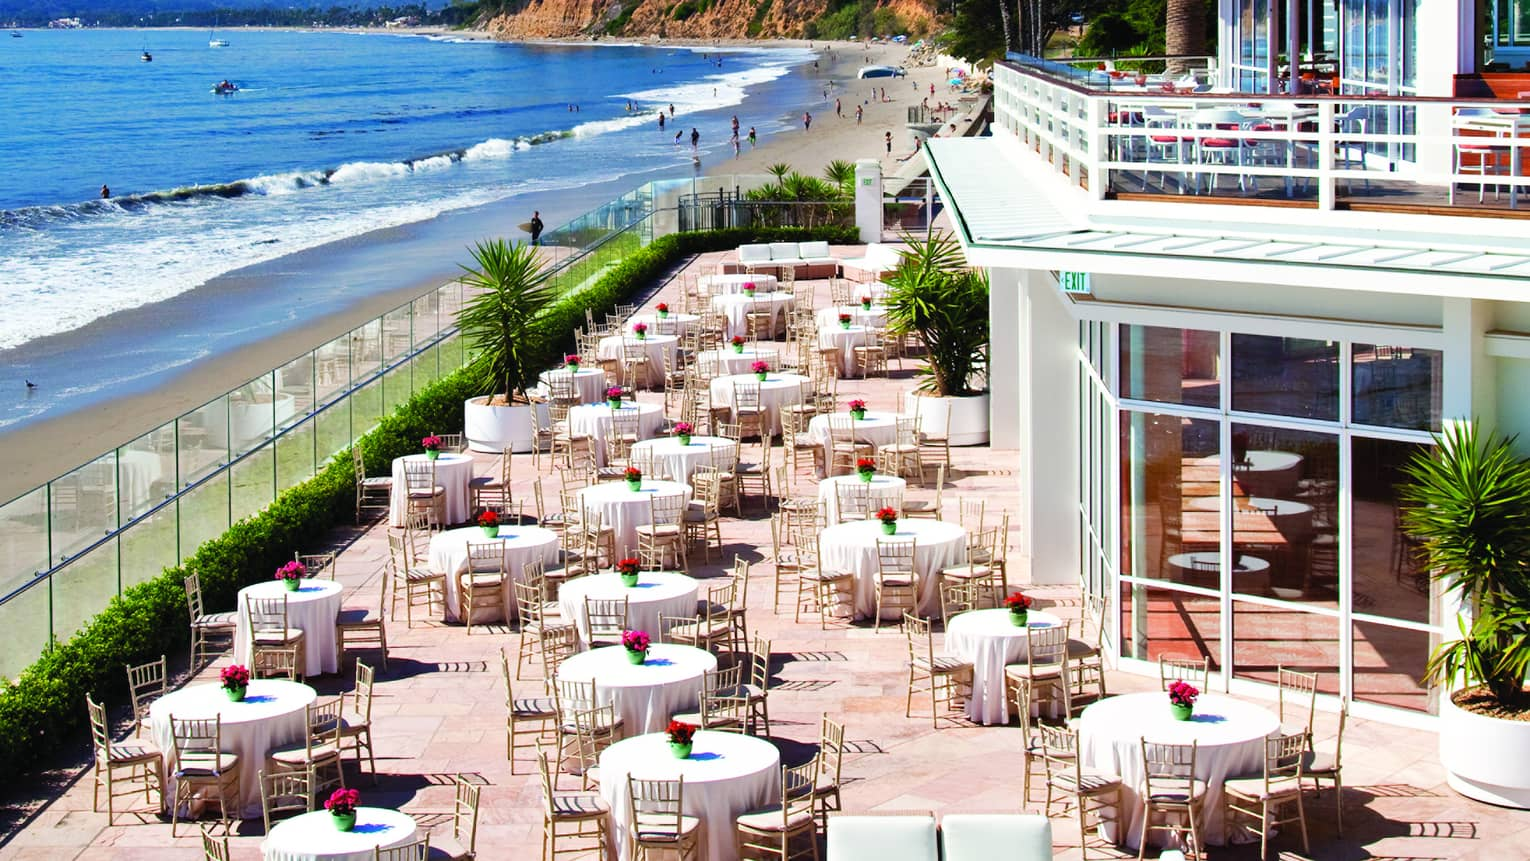 Aerial view of dining tables on large LaPacifica Terrace overlooking ocean